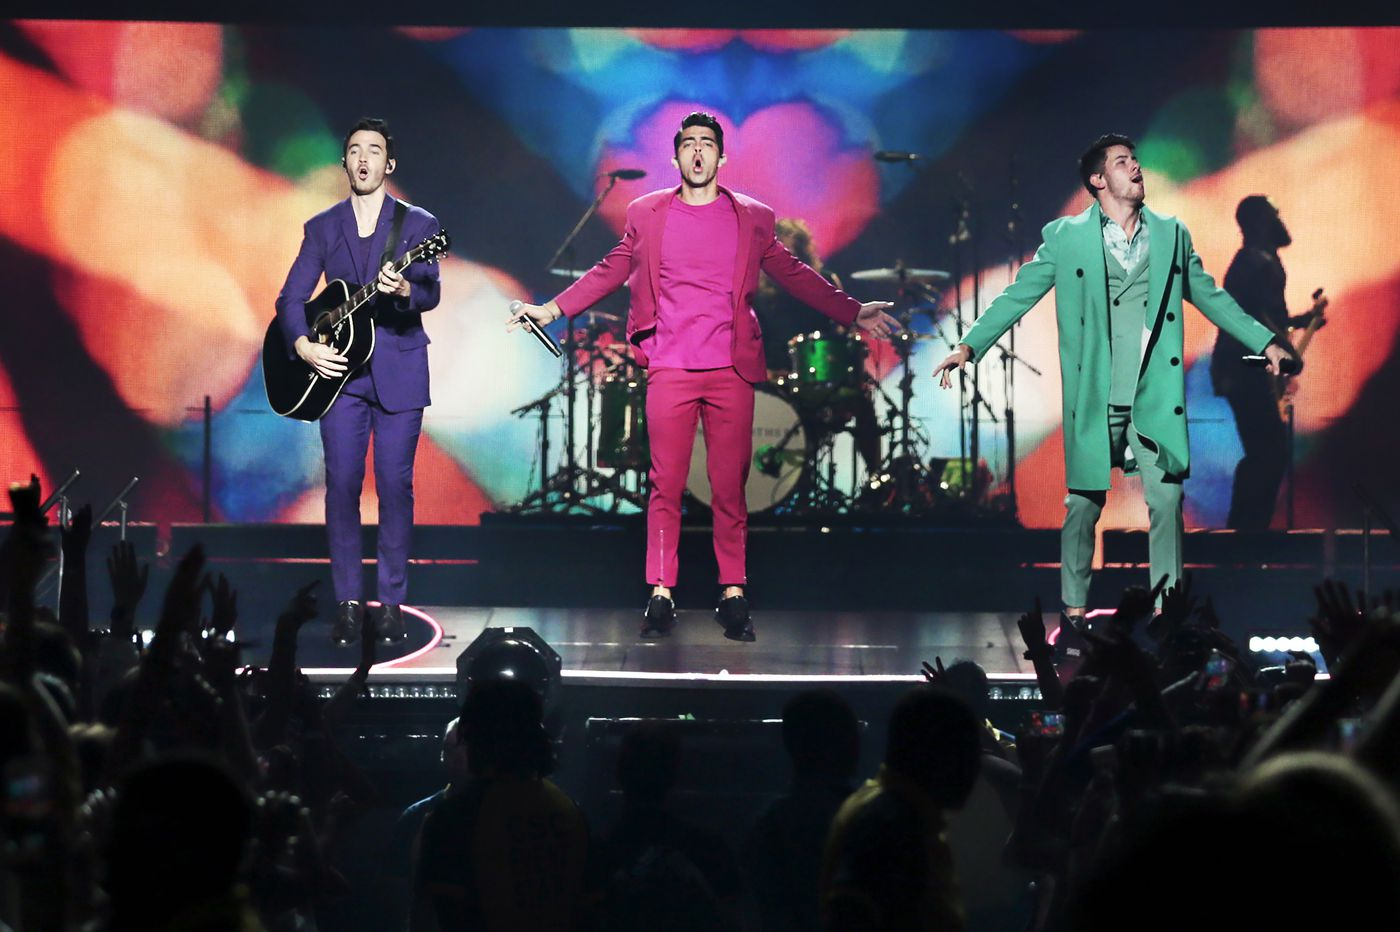 Jonas Brothers and Backstreet Boys — two generations of boy bands — play back-to-back in Philly